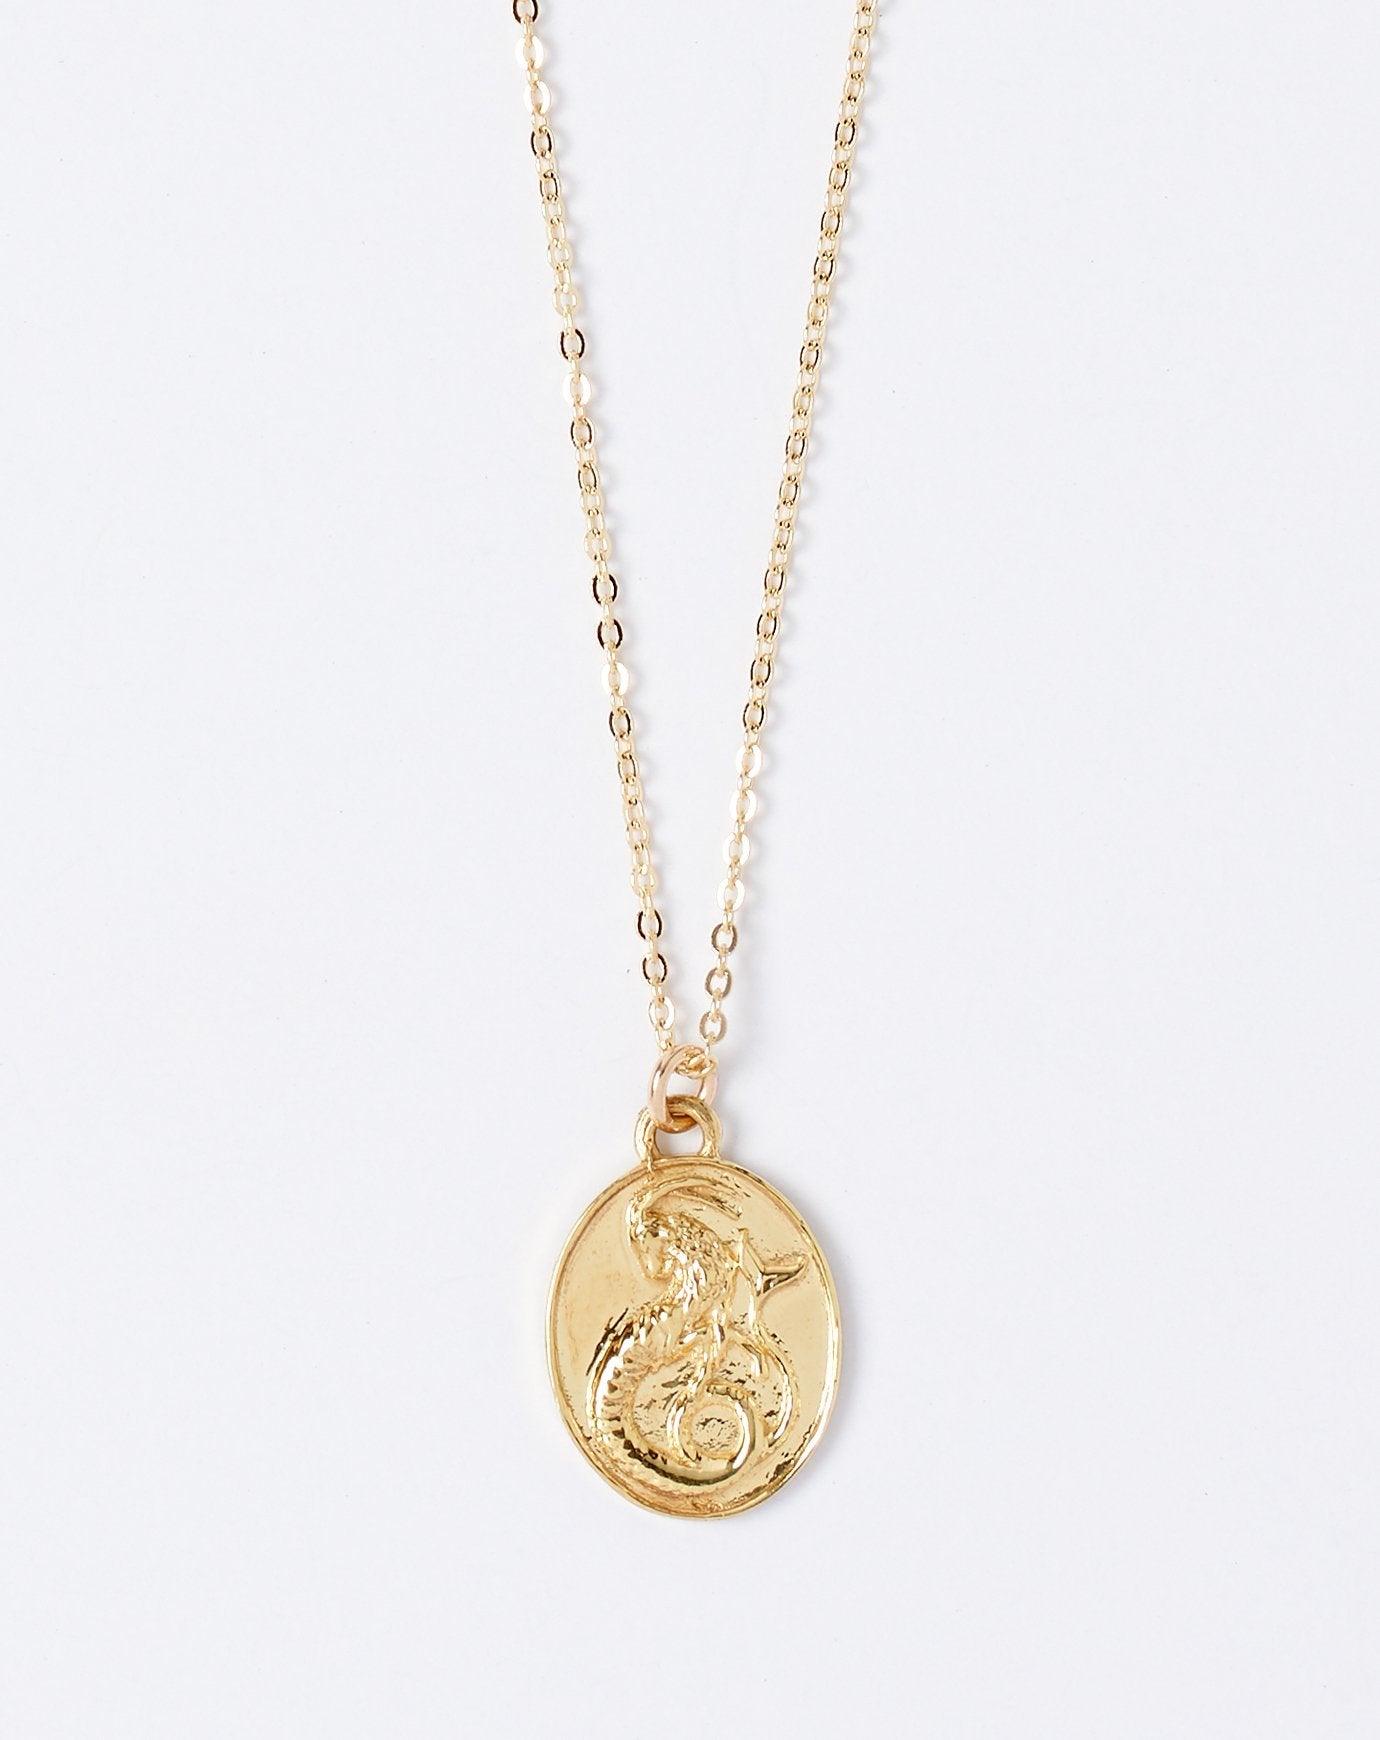 Talon Zodiac Pendant Necklace - Capricorn